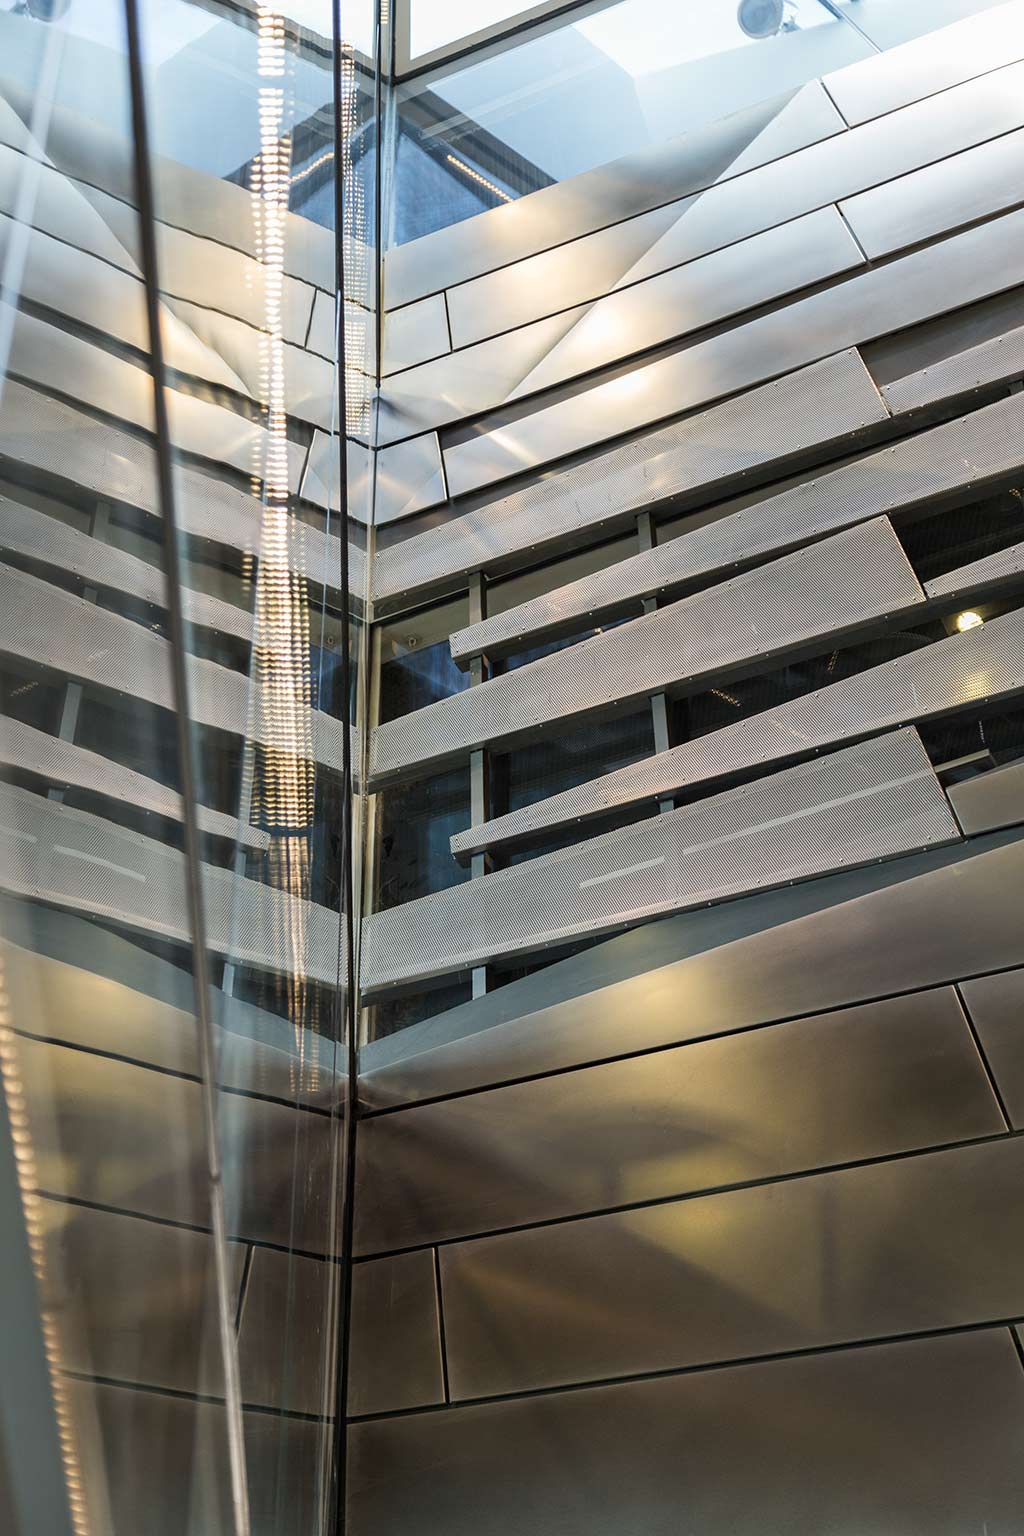 Detail of the shaded perforated metal panel system at Cornell's Science Center.